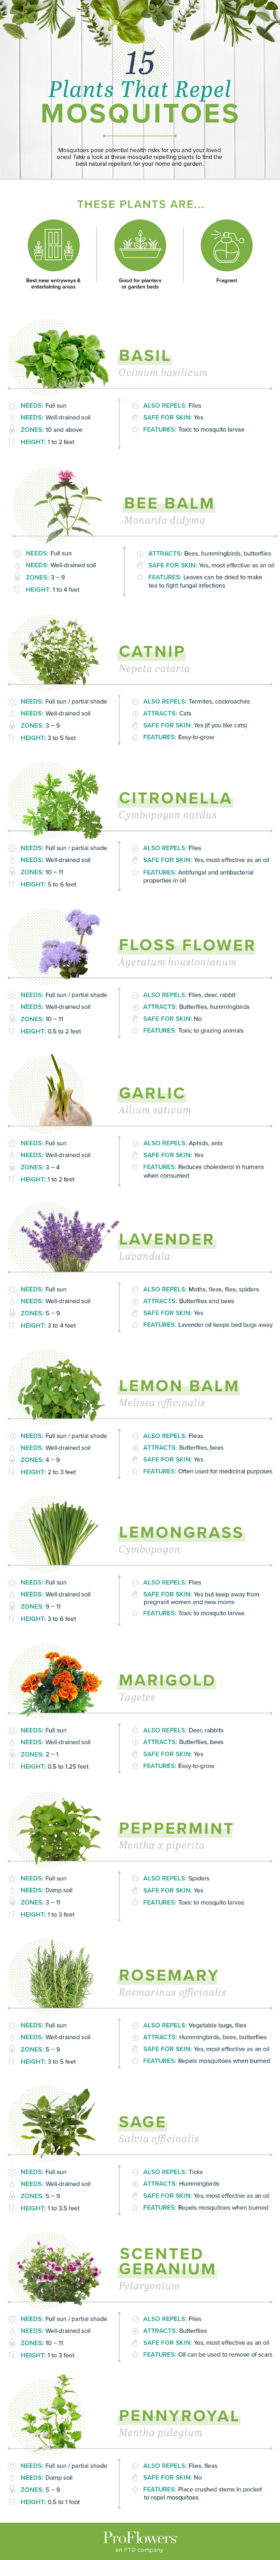 list of plants that repel mosquitoes